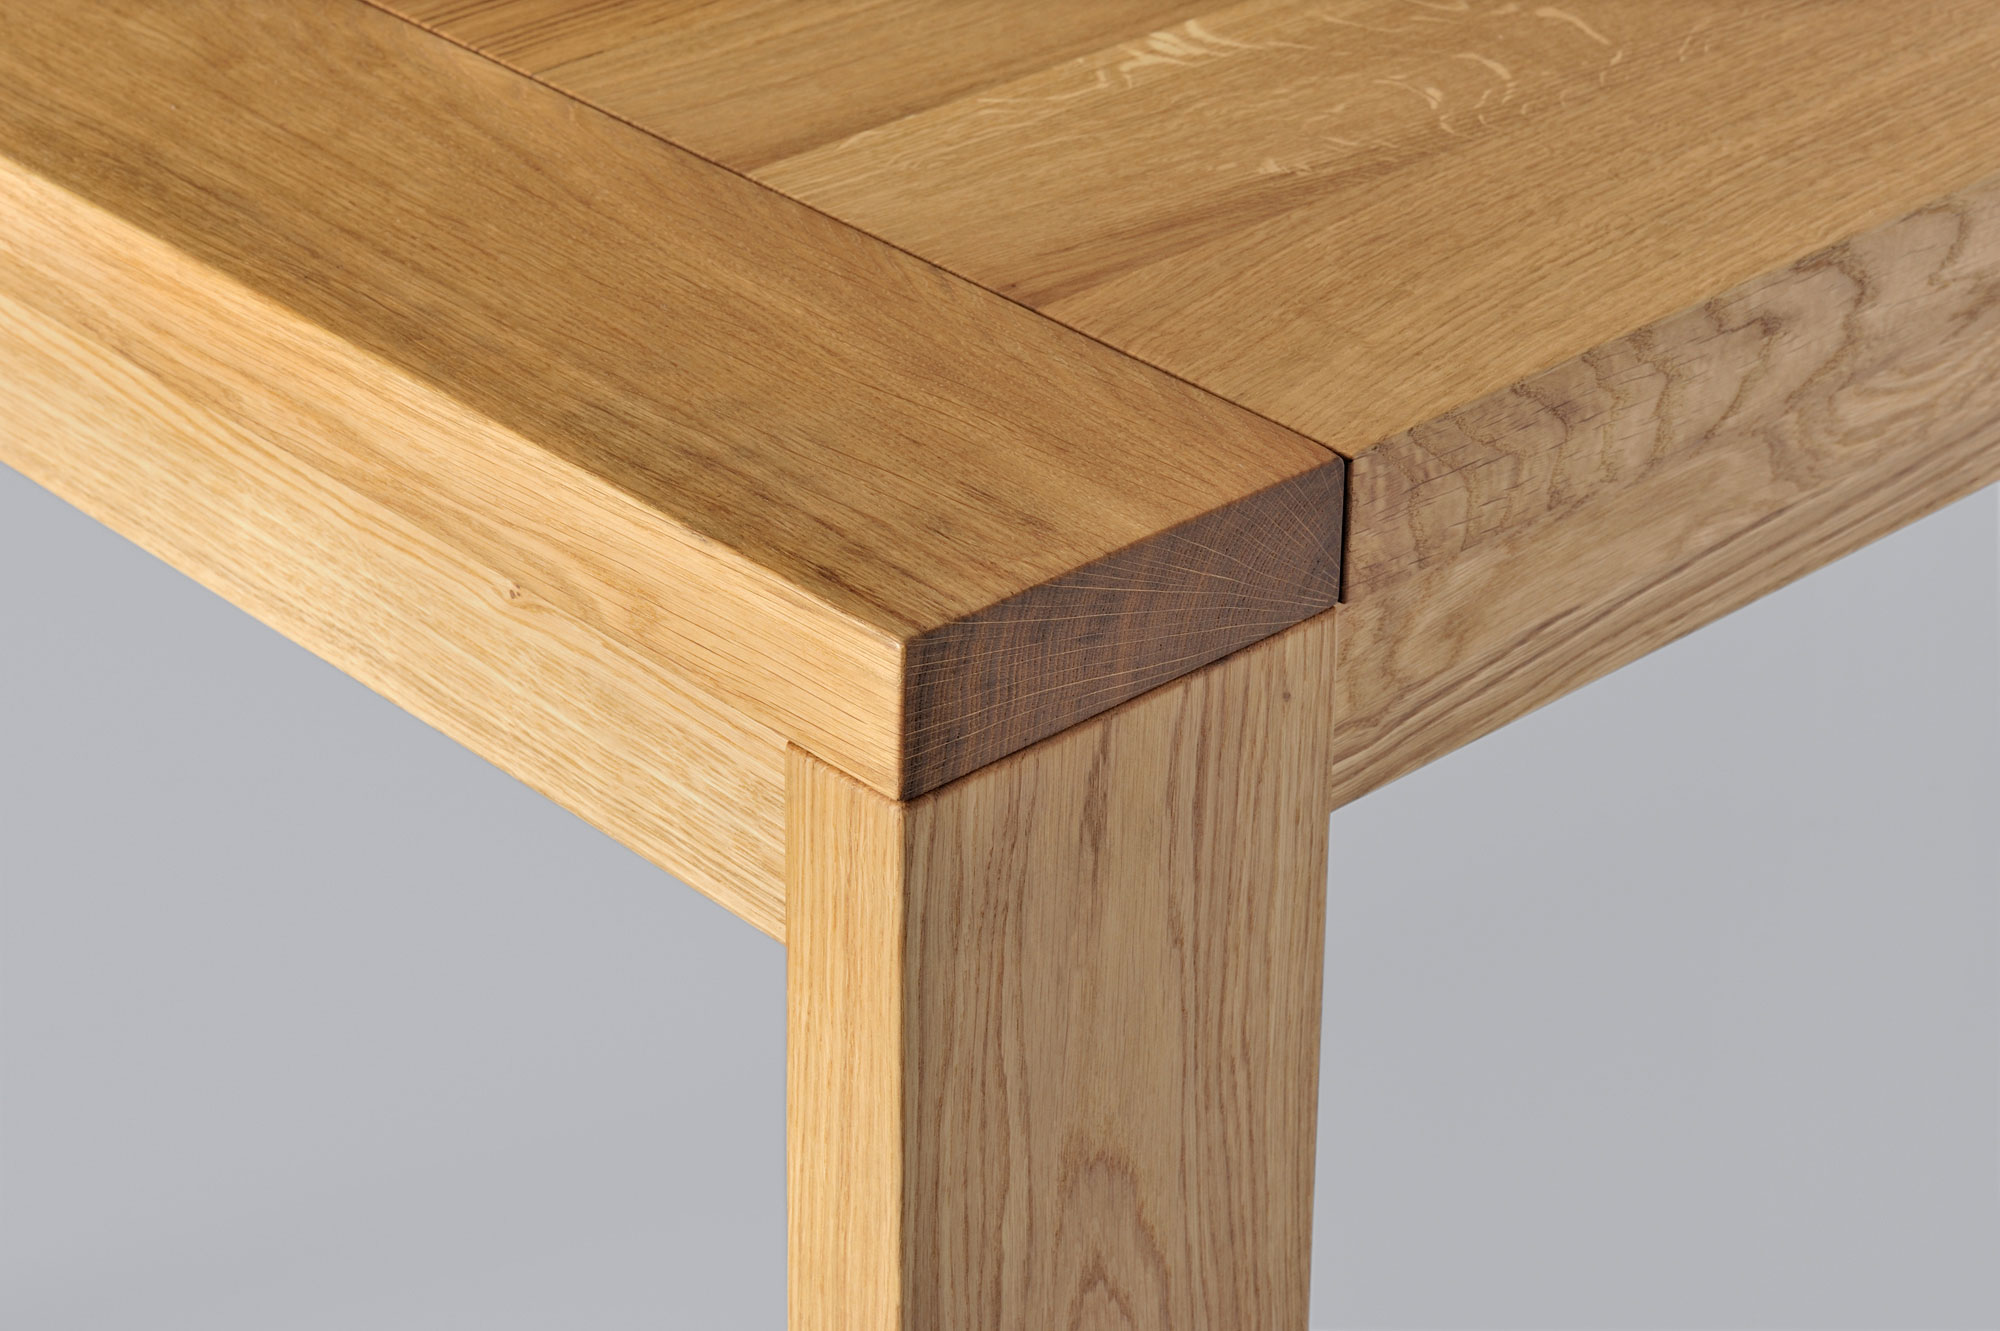 Extendable Table LUNGO 3231a custom made in solid wood by vitamin design